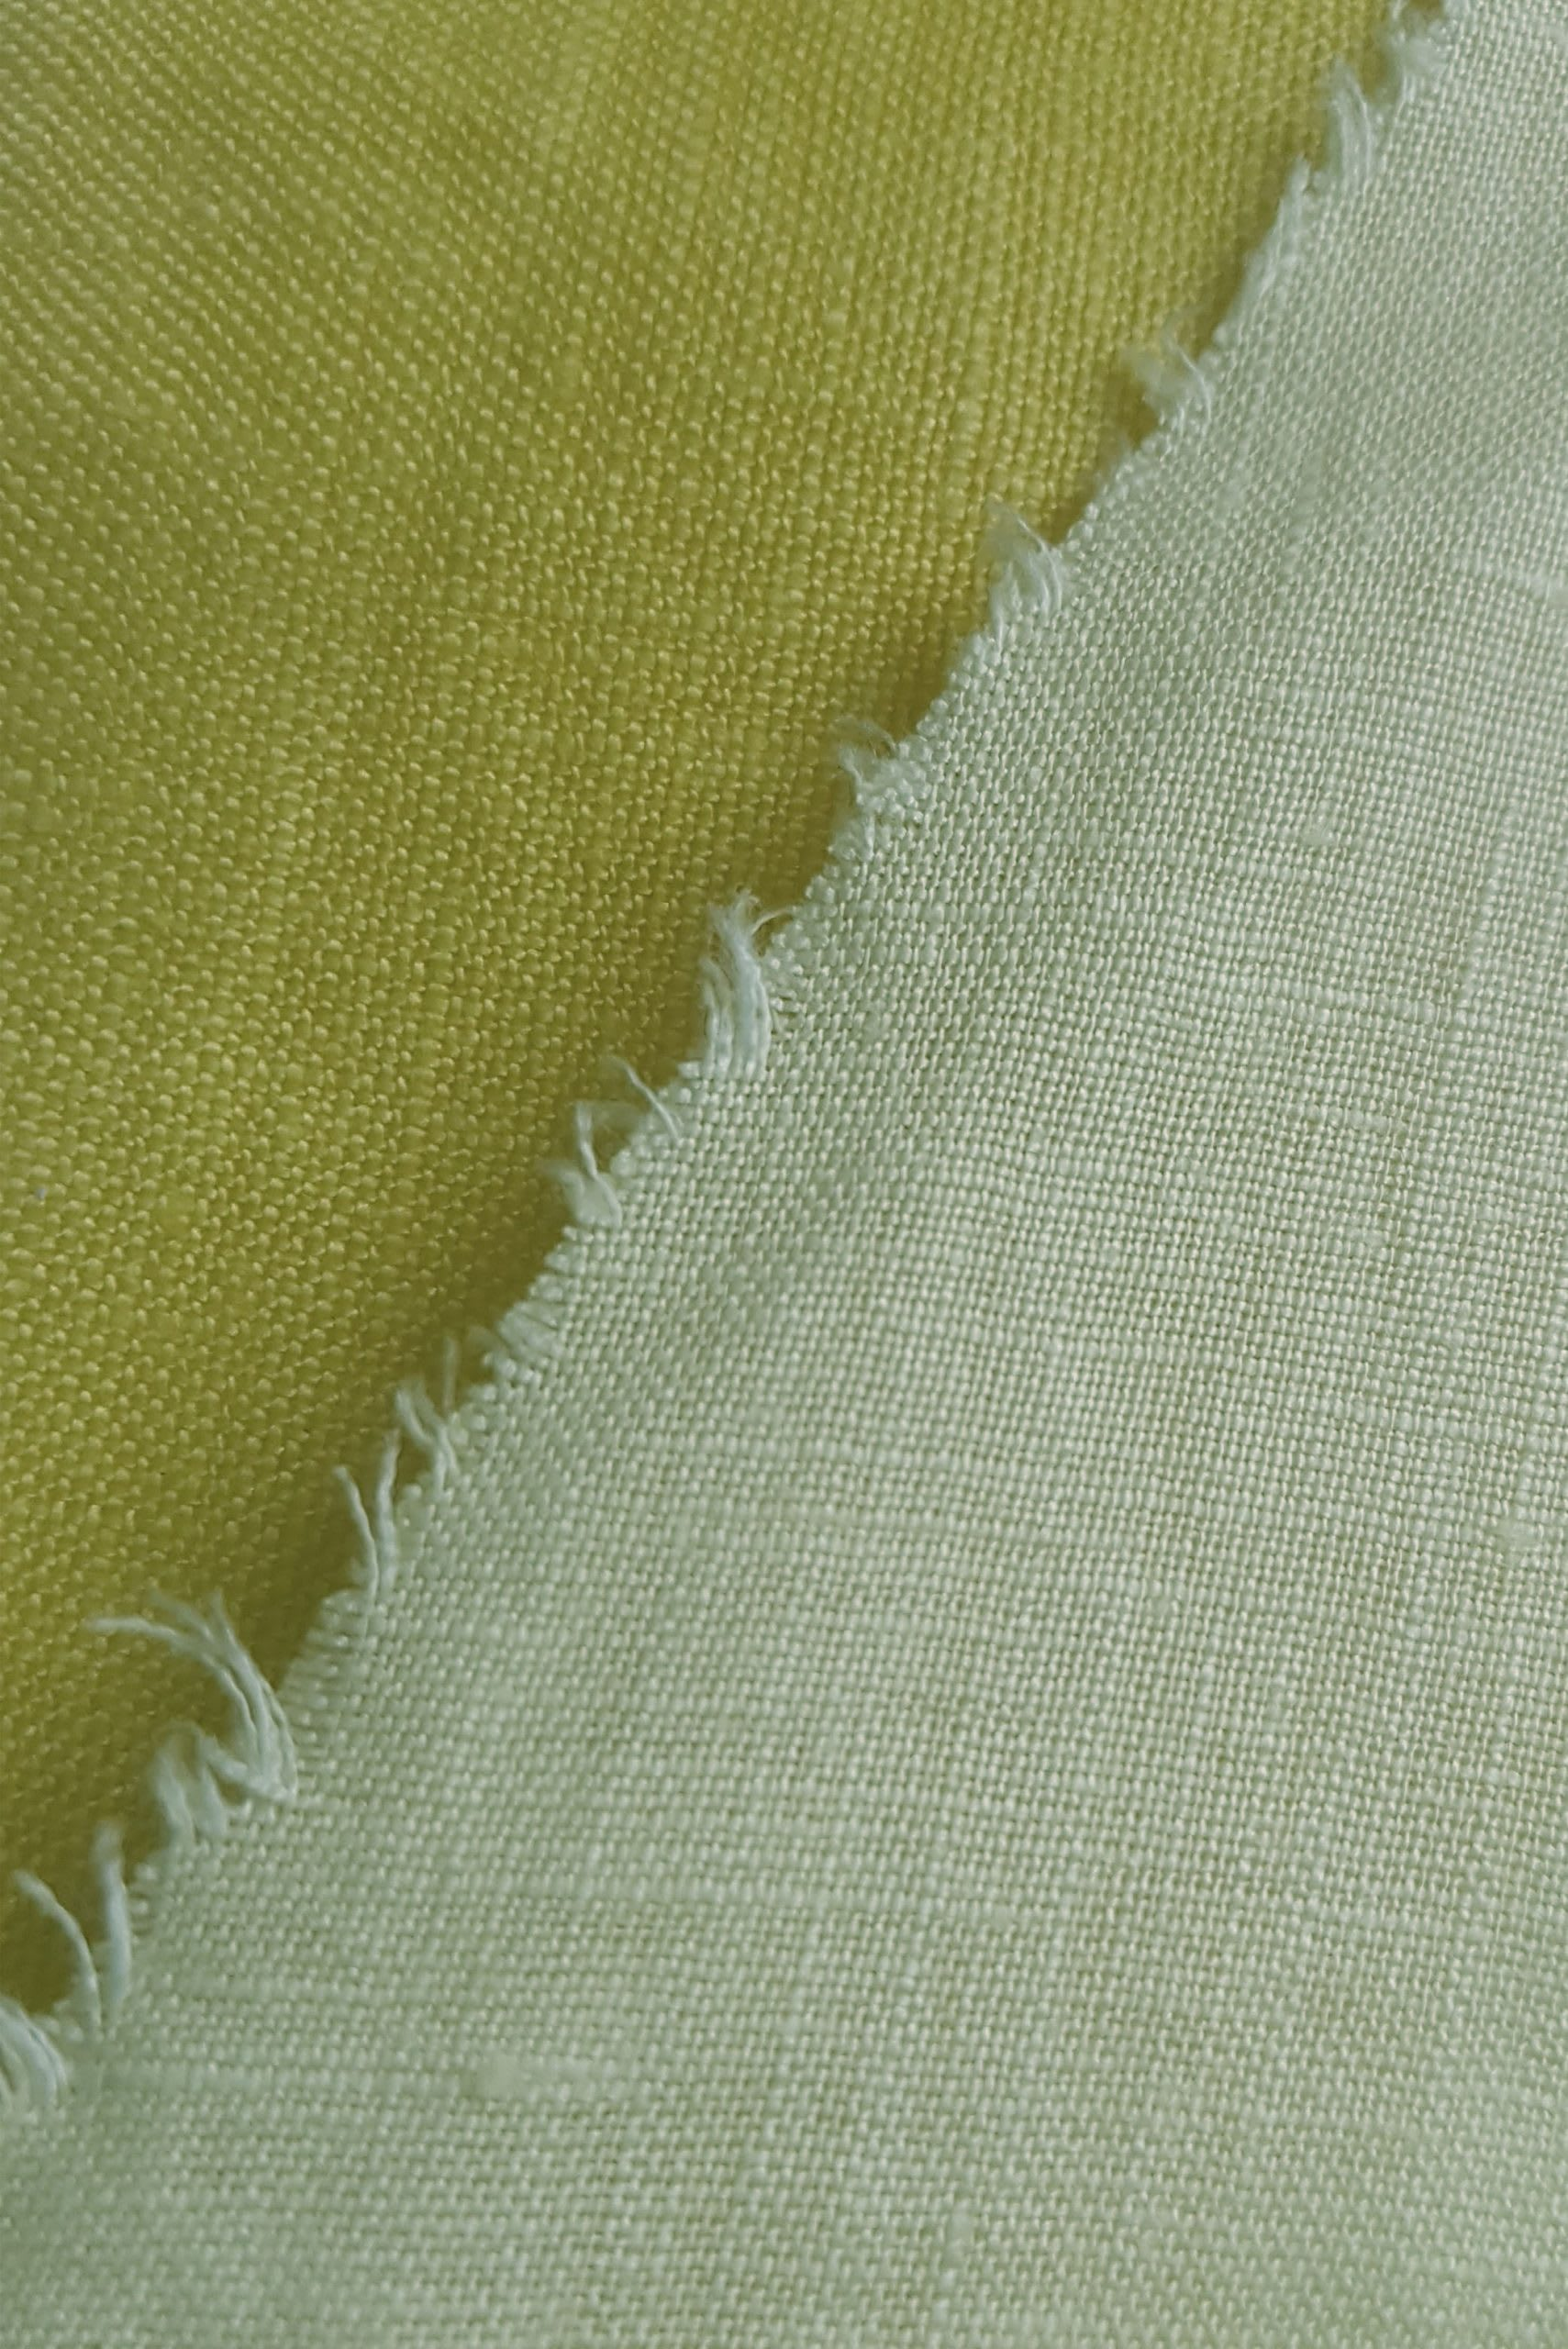 close up of linen hand dyed shades of sunflower yellow